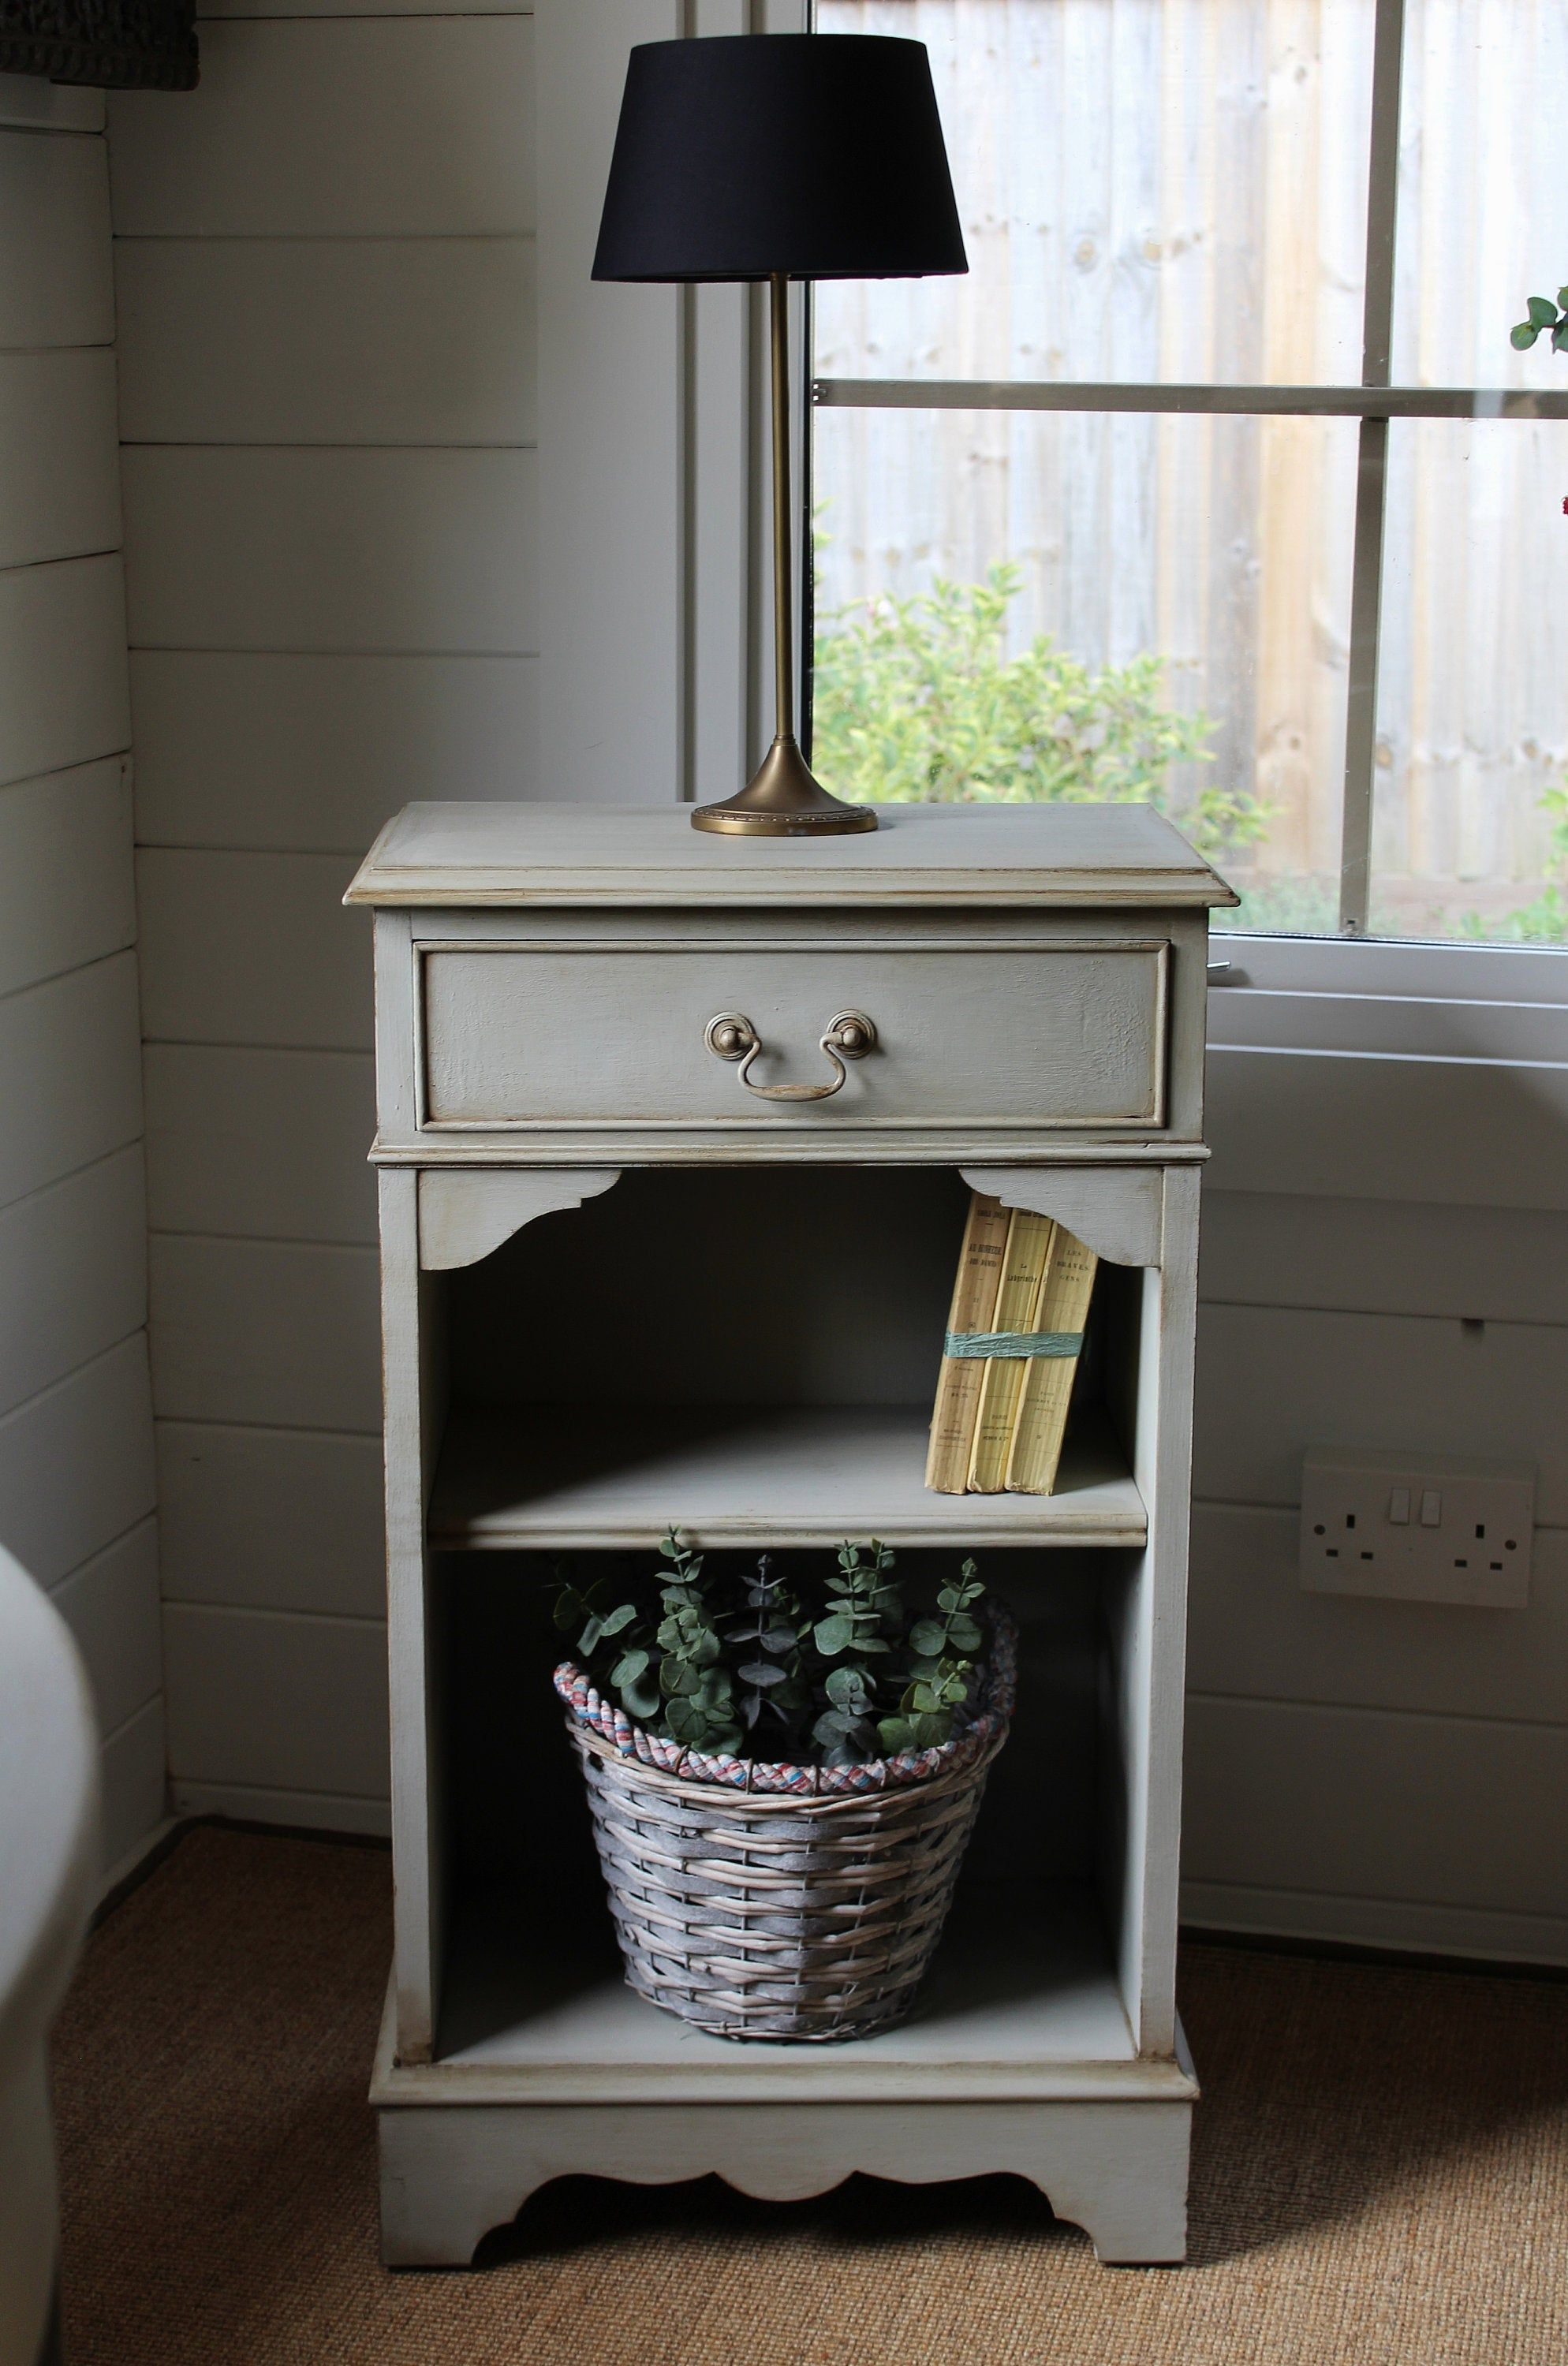 Gustavian Style Hand Painted Bedside Table Storage Unit With Drawer Farmhouse Style Hand Painted Bedside Table Painted Bedside Tables Bedside Table Storage